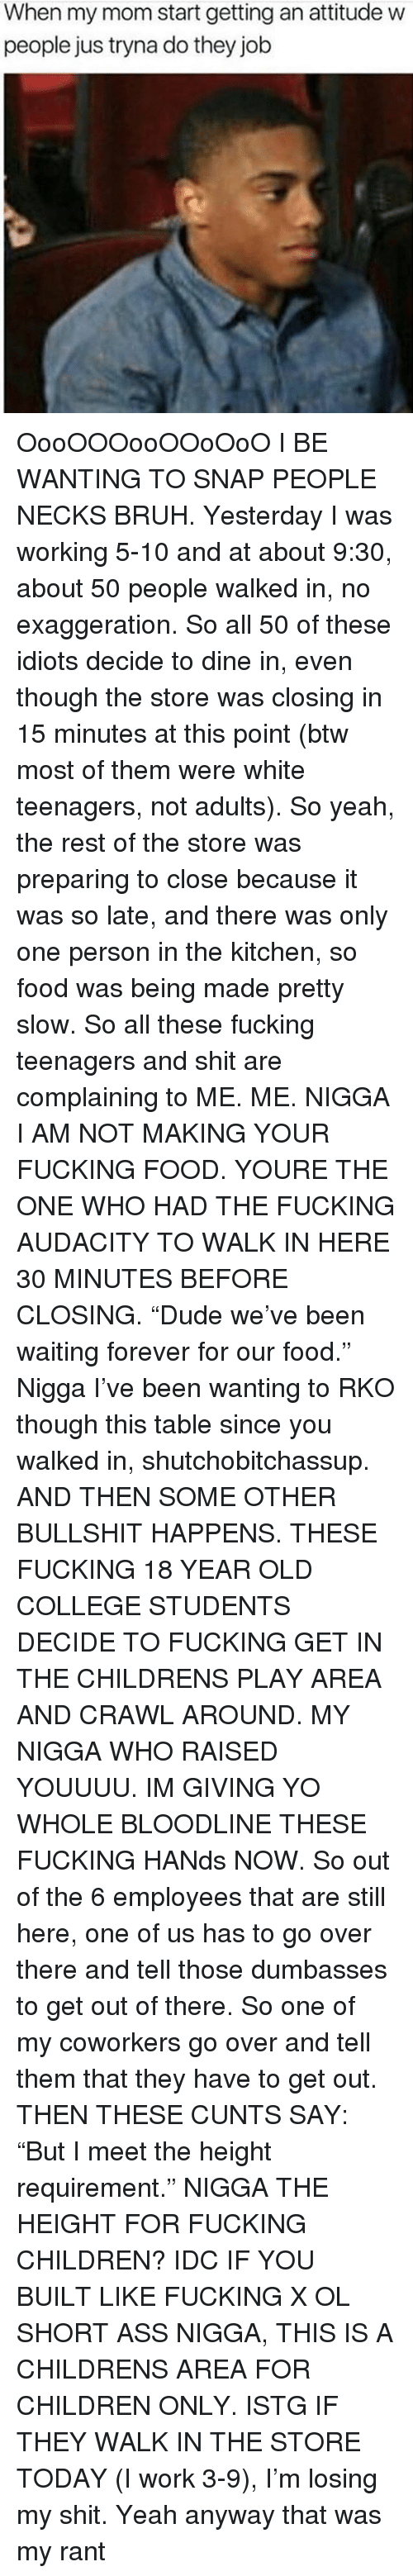 "Ass, Bruh, and Children: When my mom start getting an attitude w  people jus tryna do they job OooOOOooOOoOoO I BE WANTING TO SNAP PEOPLE NECKS BRUH. Yesterday I was working 5-10 and at about 9:30, about 50 people walked in, no exaggeration. So all 50 of these idiots decide to dine in, even though the store was closing in 15 minutes at this point (btw most of them were white teenagers, not adults). So yeah, the rest of the store was preparing to close because it was so late, and there was only one person in the kitchen, so food was being made pretty slow. So all these fucking teenagers and shit are complaining to ME. ME. NIGGA I AM NOT MAKING YOUR FUCKING FOOD. YOURE THE ONE WHO HAD THE FUCKING AUDACITY TO WALK IN HERE 30 MINUTES BEFORE CLOSING. ""Dude we've been waiting forever for our food."" Nigga I've been wanting to RKO though this table since you walked in, shutchobitchassup. AND THEN SOME OTHER BULLSHIT HAPPENS. THESE FUCKING 18 YEAR OLD COLLEGE STUDENTS DECIDE TO FUCKING GET IN THE CHILDRENS PLAY AREA AND CRAWL AROUND. MY NIGGA WHO RAISED YOUUUU. IM GIVING YO WHOLE BLOODLINE THESE FUCKING HANds NOW. So out of the 6 employees that are still here, one of us has to go over there and tell those dumbasses to get out of there. So one of my coworkers go over and tell them that they have to get out. THEN THESE CUNTS SAY: ""But I meet the height requirement."" NIGGA THE HEIGHT FOR FUCKING CHILDREN? IDC IF YOU BUILT LIKE FUCKING X OL SHORT ASS NIGGA, THIS IS A CHILDRENS AREA FOR CHILDREN ONLY. ISTG IF THEY WALK IN THE STORE TODAY (I work 3-9), I'm losing my shit. Yeah anyway that was my rant"